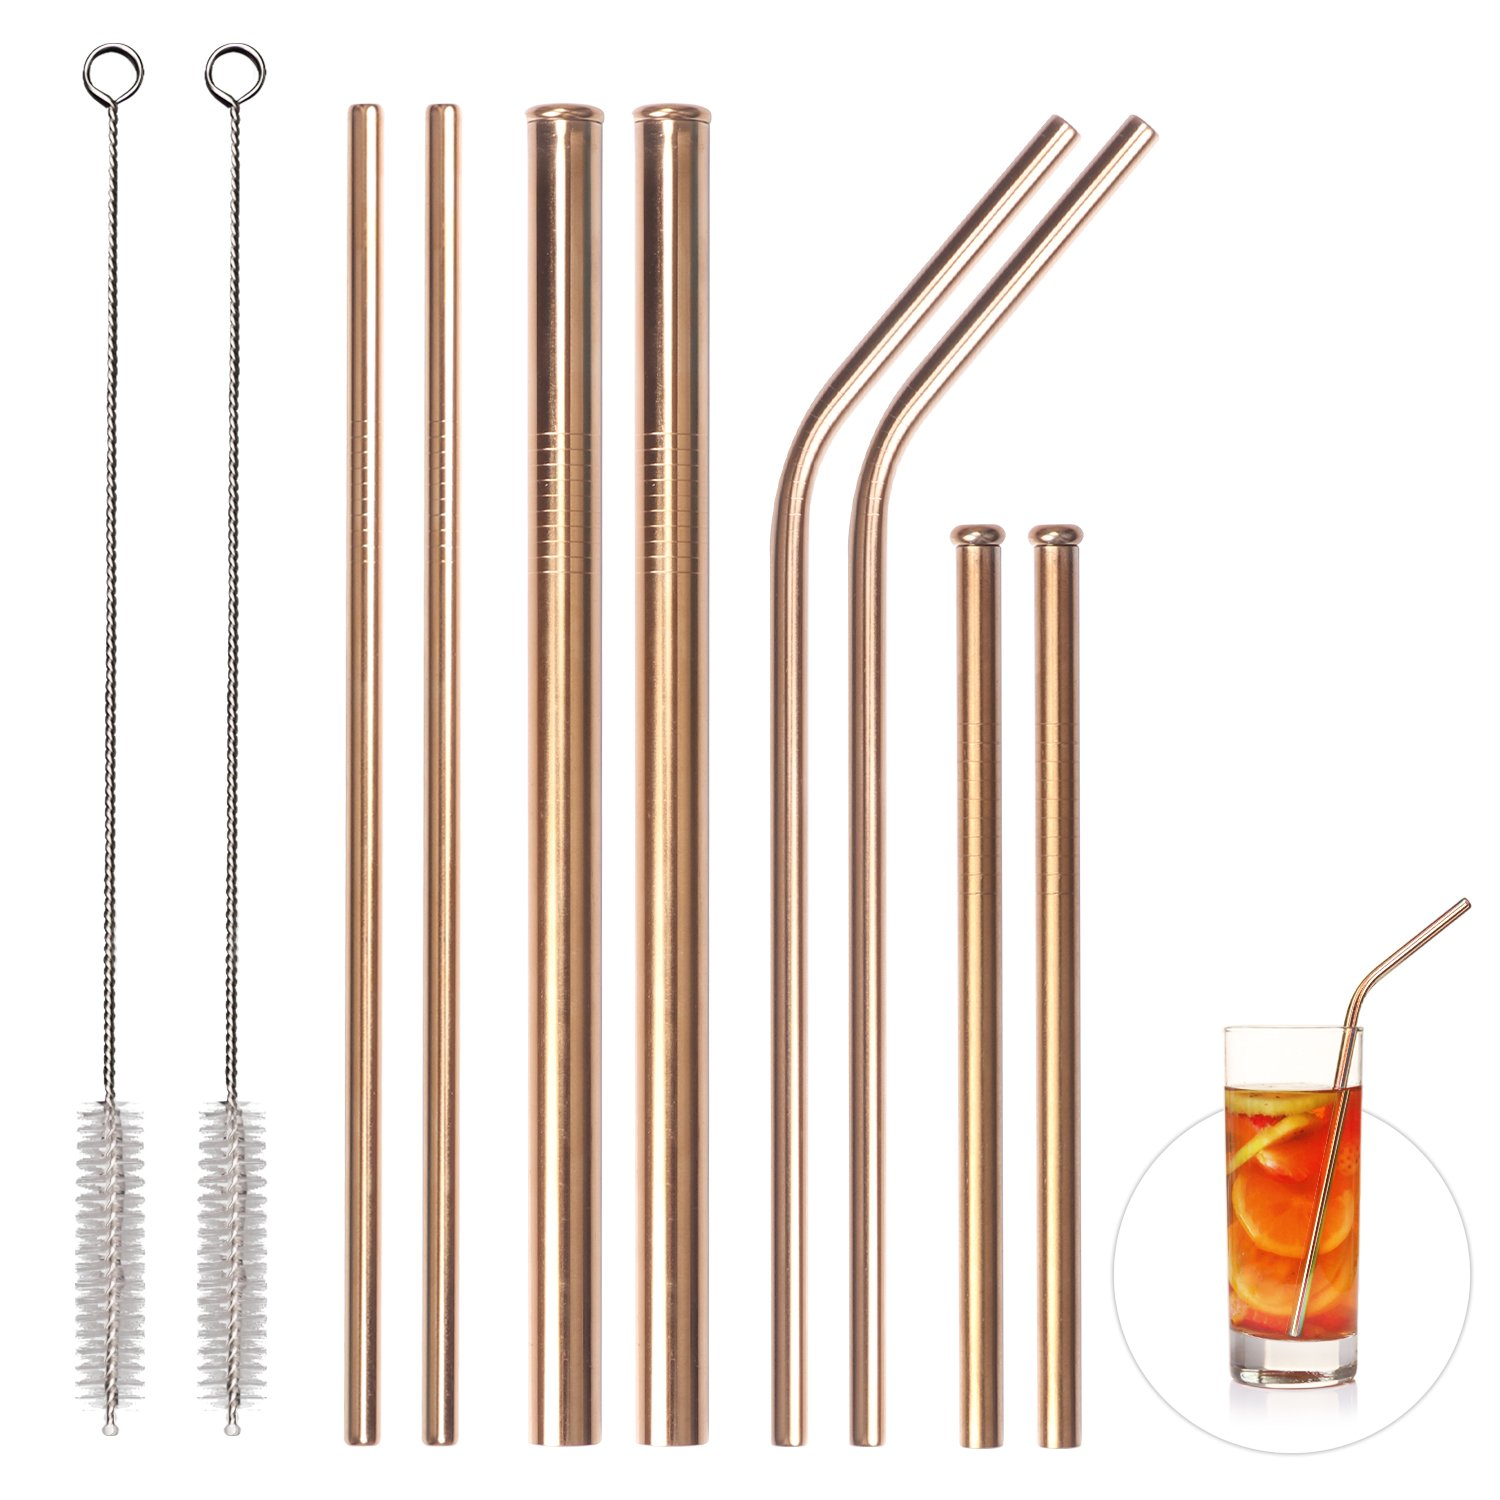 Stainless Steel Reusable Straws, Set of 8, Elitea Metal Drinking Straws for Smoothies Milkshake Yeti Rtic Ozark 30 20 oz Tumblers, Including Wide Short Straight Bent and Cleaning Brush (Rose Gold)